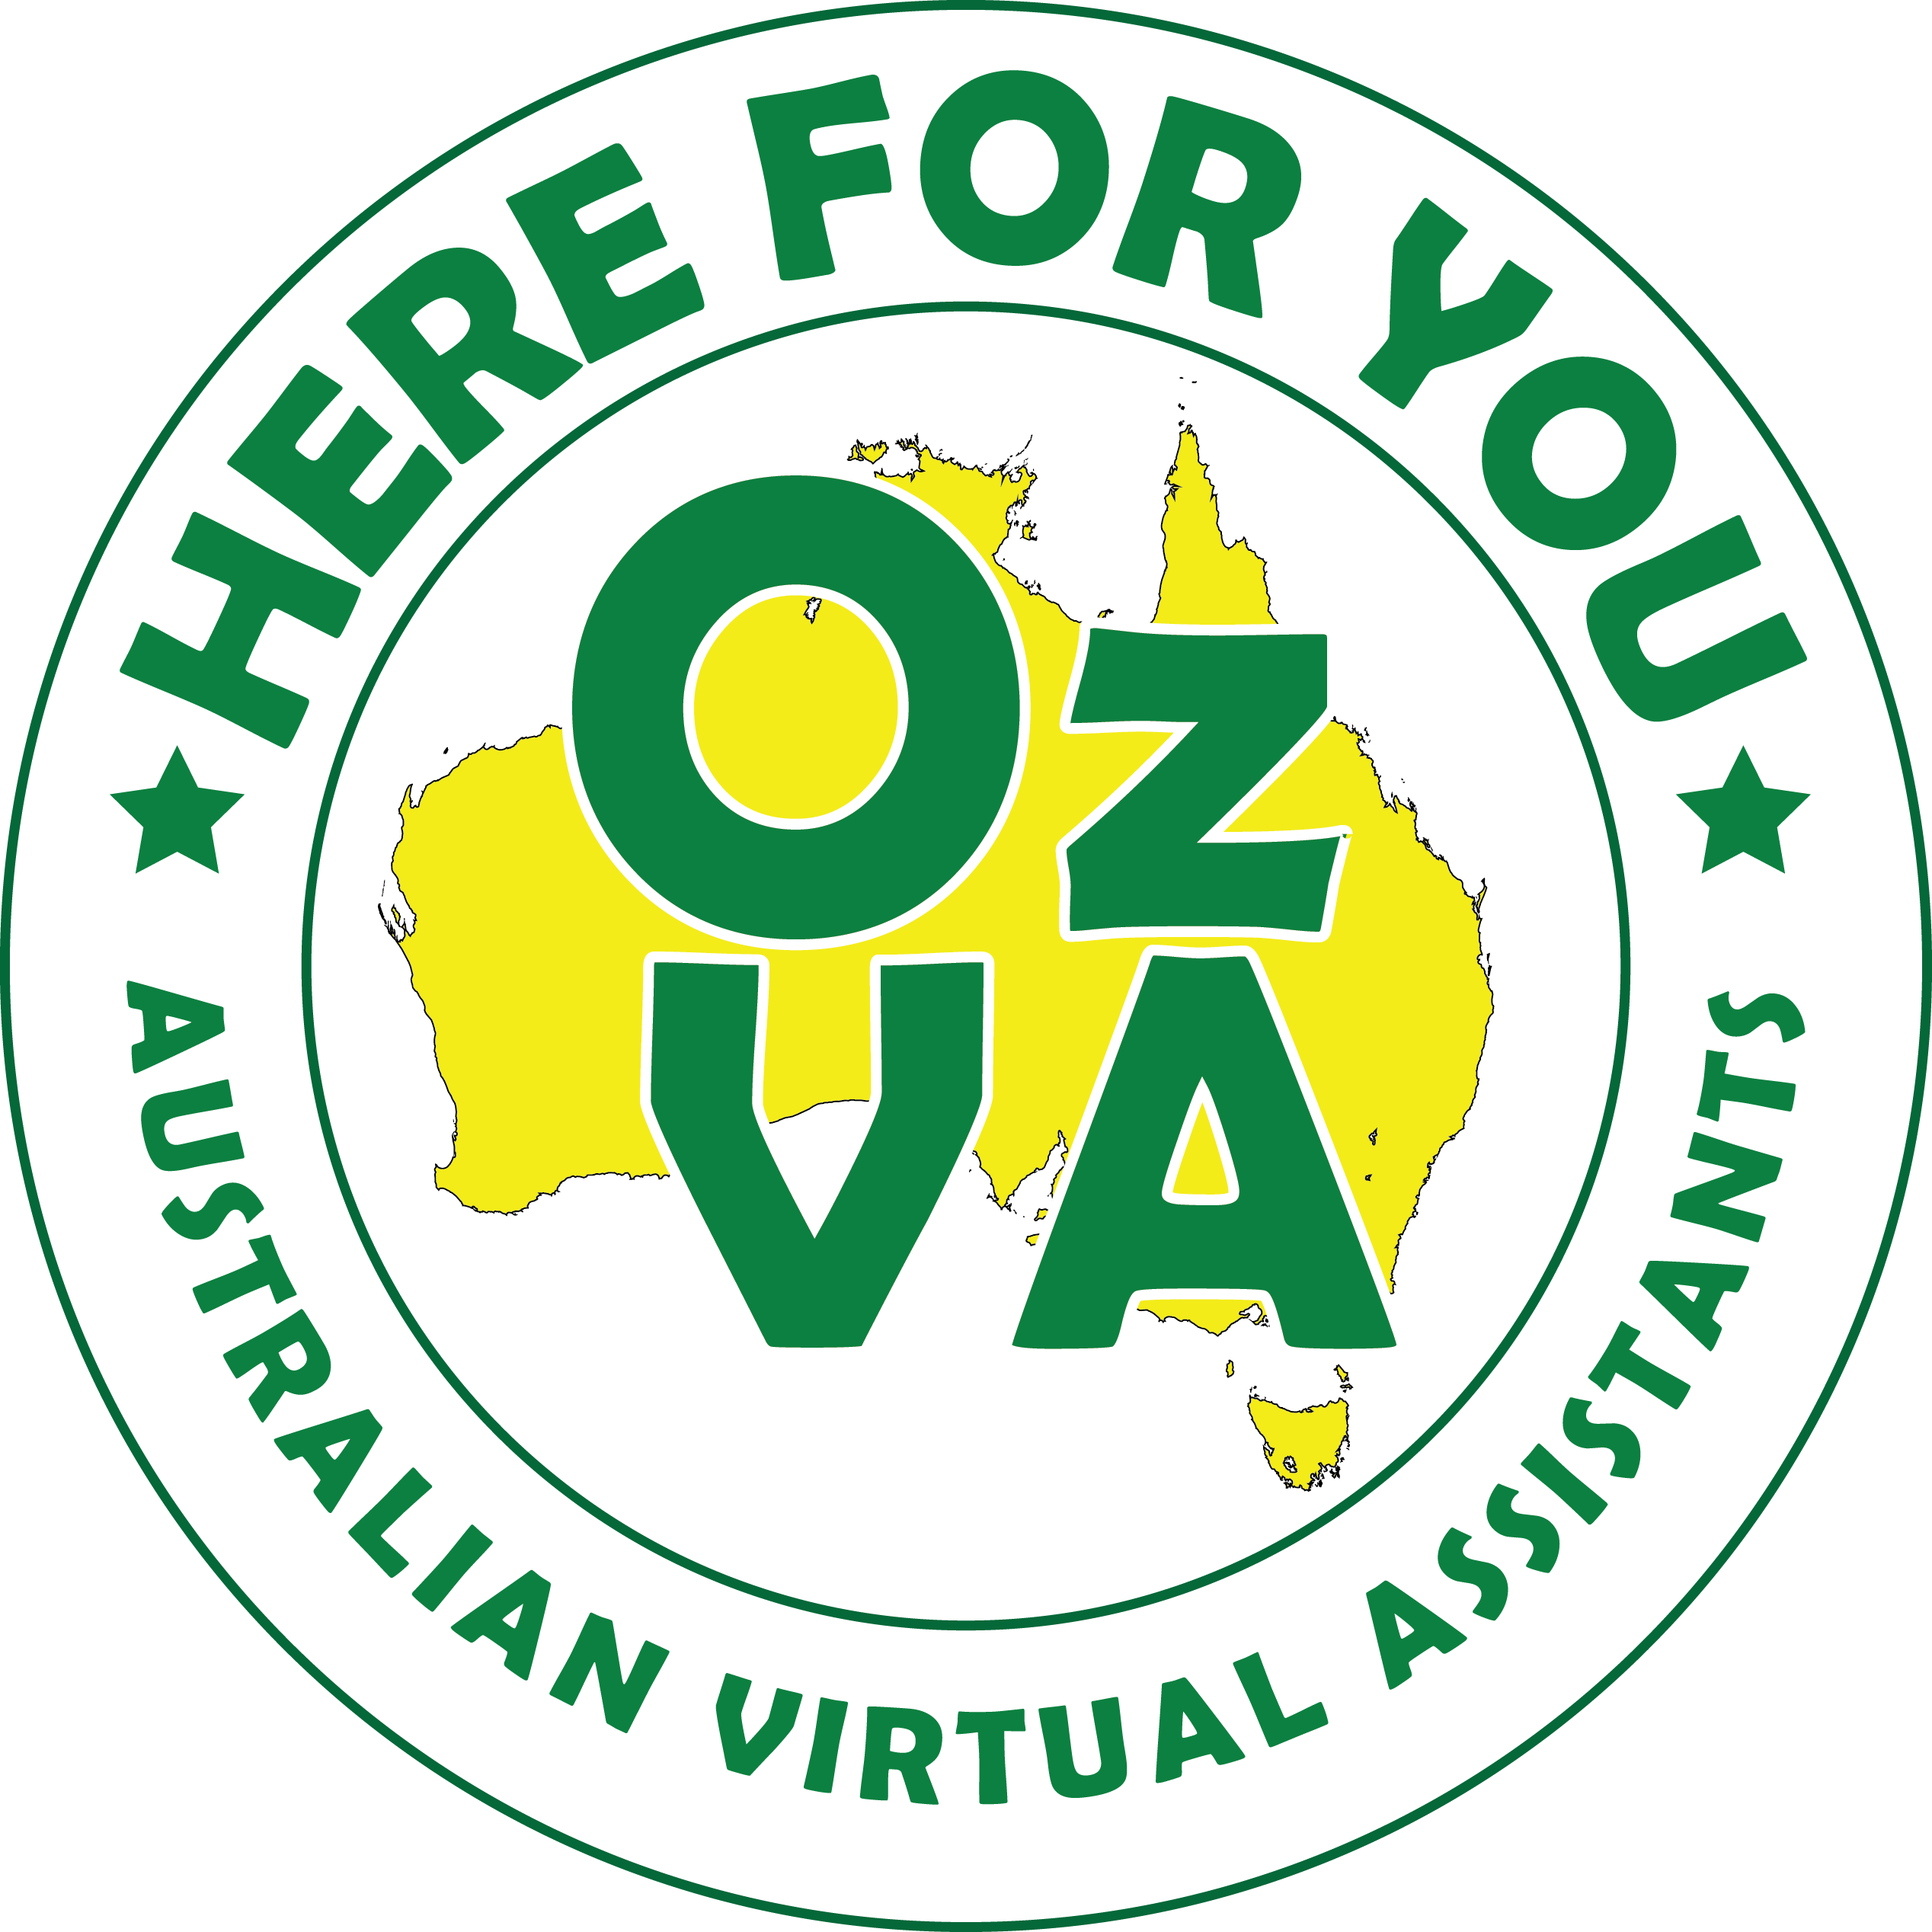 Australian-virtual-assistants-logo